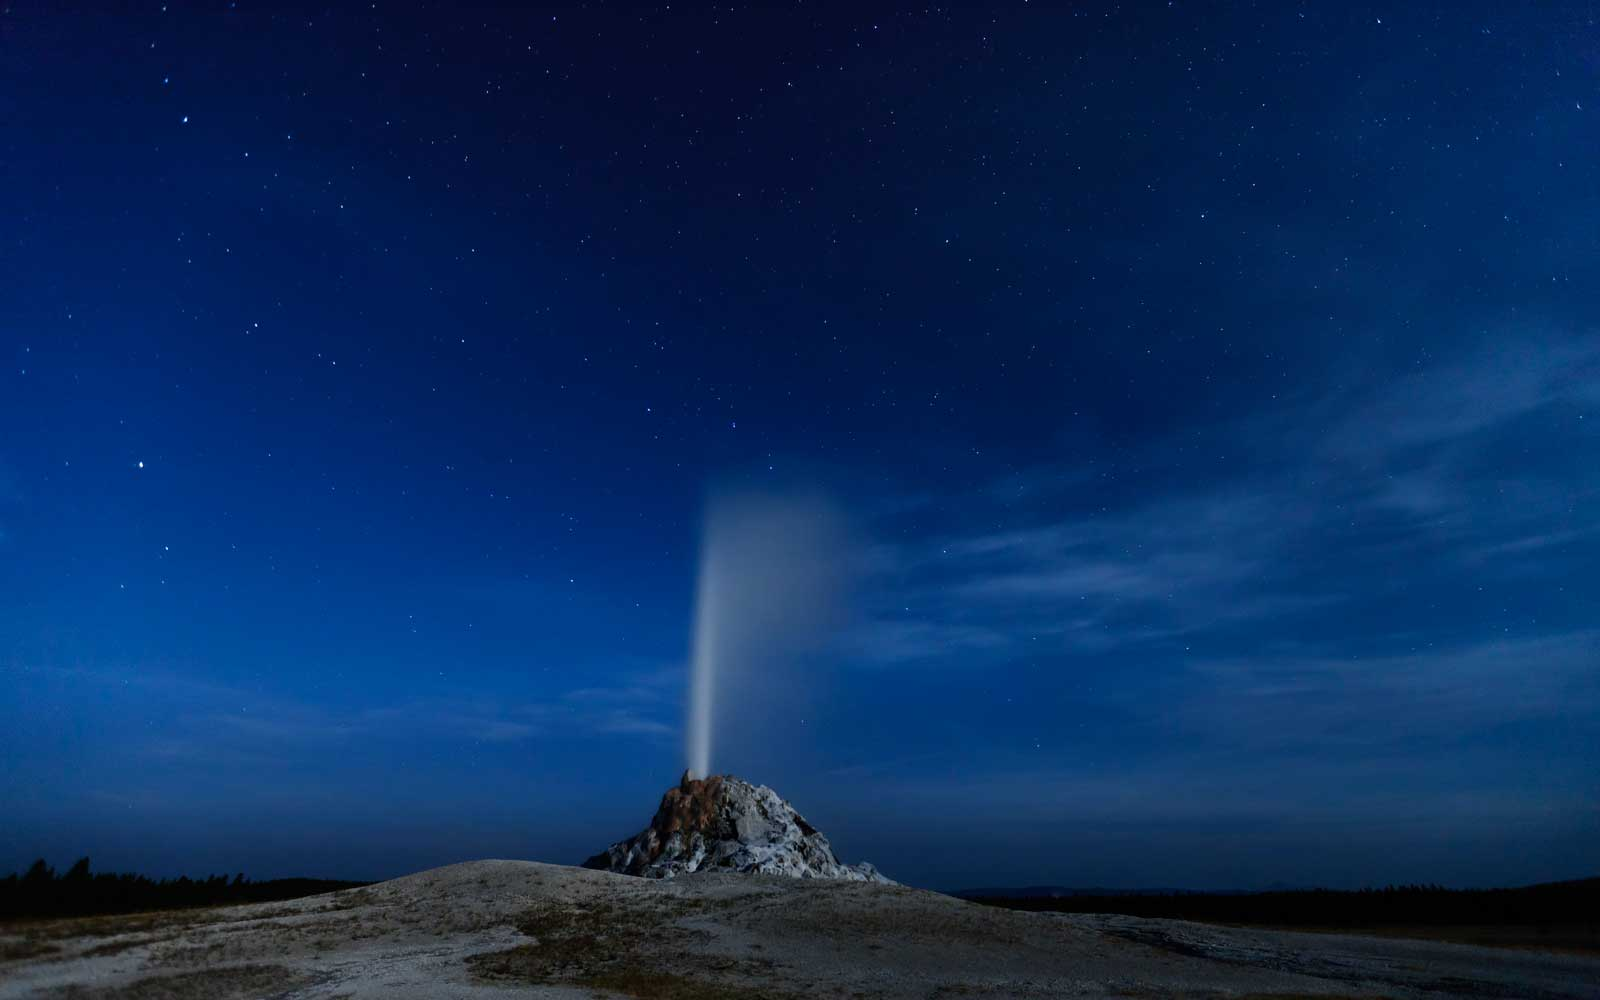 The White Cone Geyser, lit only by the light of a full moon, erupts under a star-filled sky in Yellowstone National Park, Wyoming, USA.